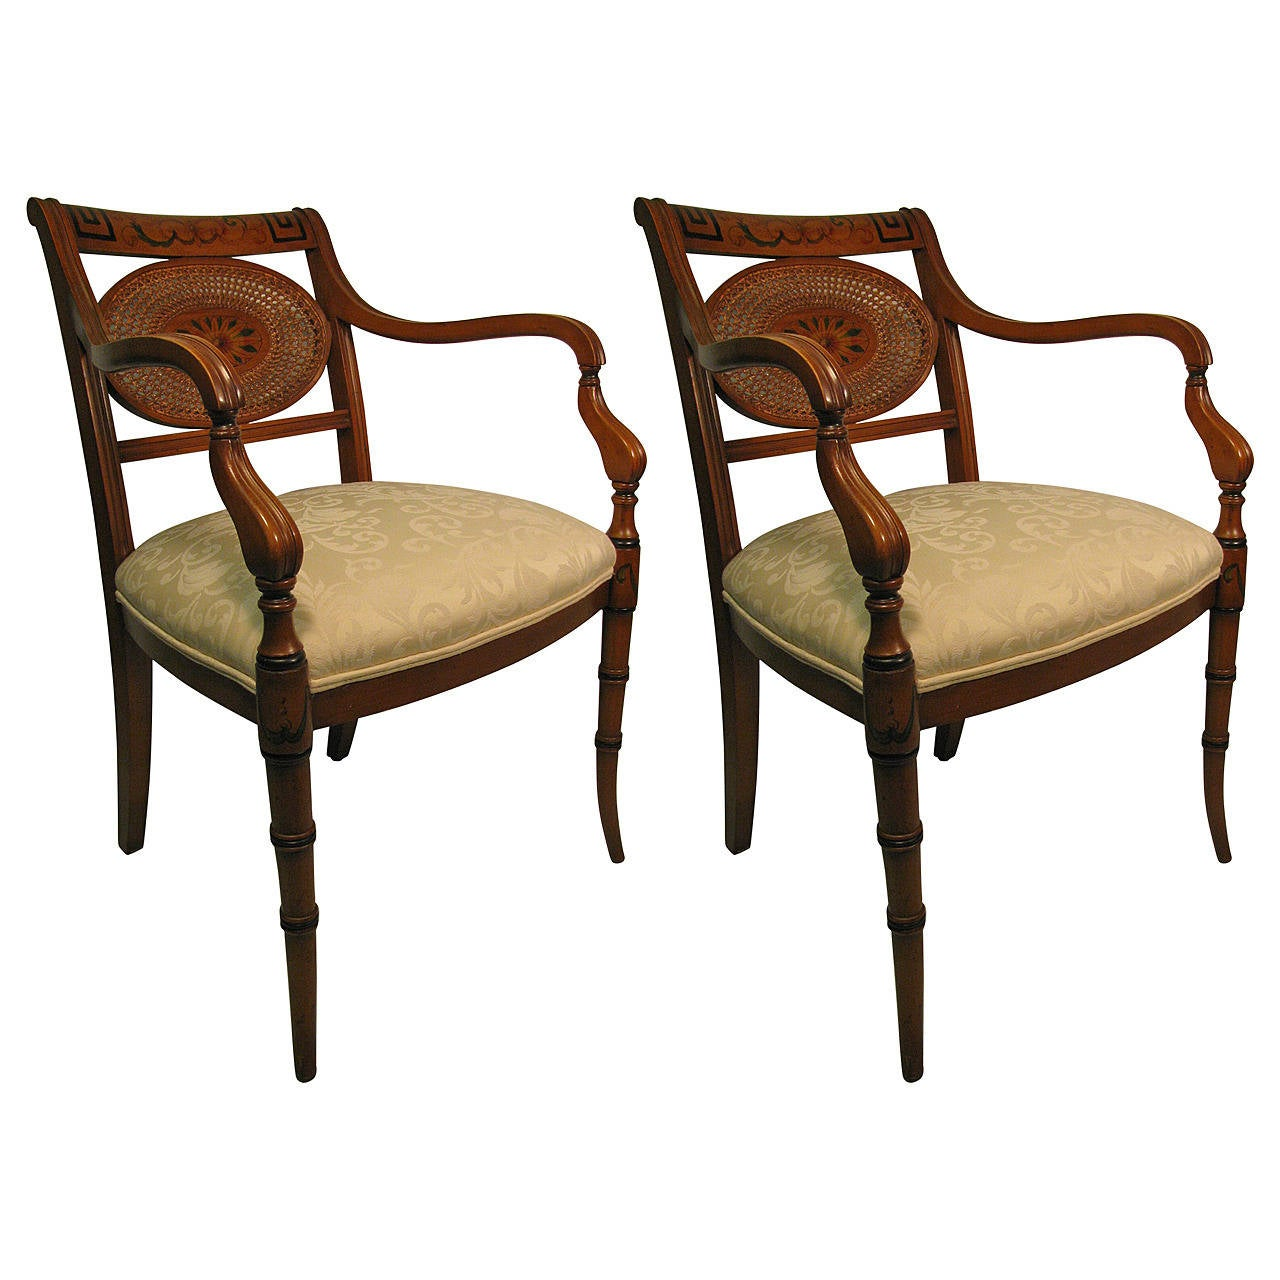 Pair of Adams Style Caned Back Armchairs